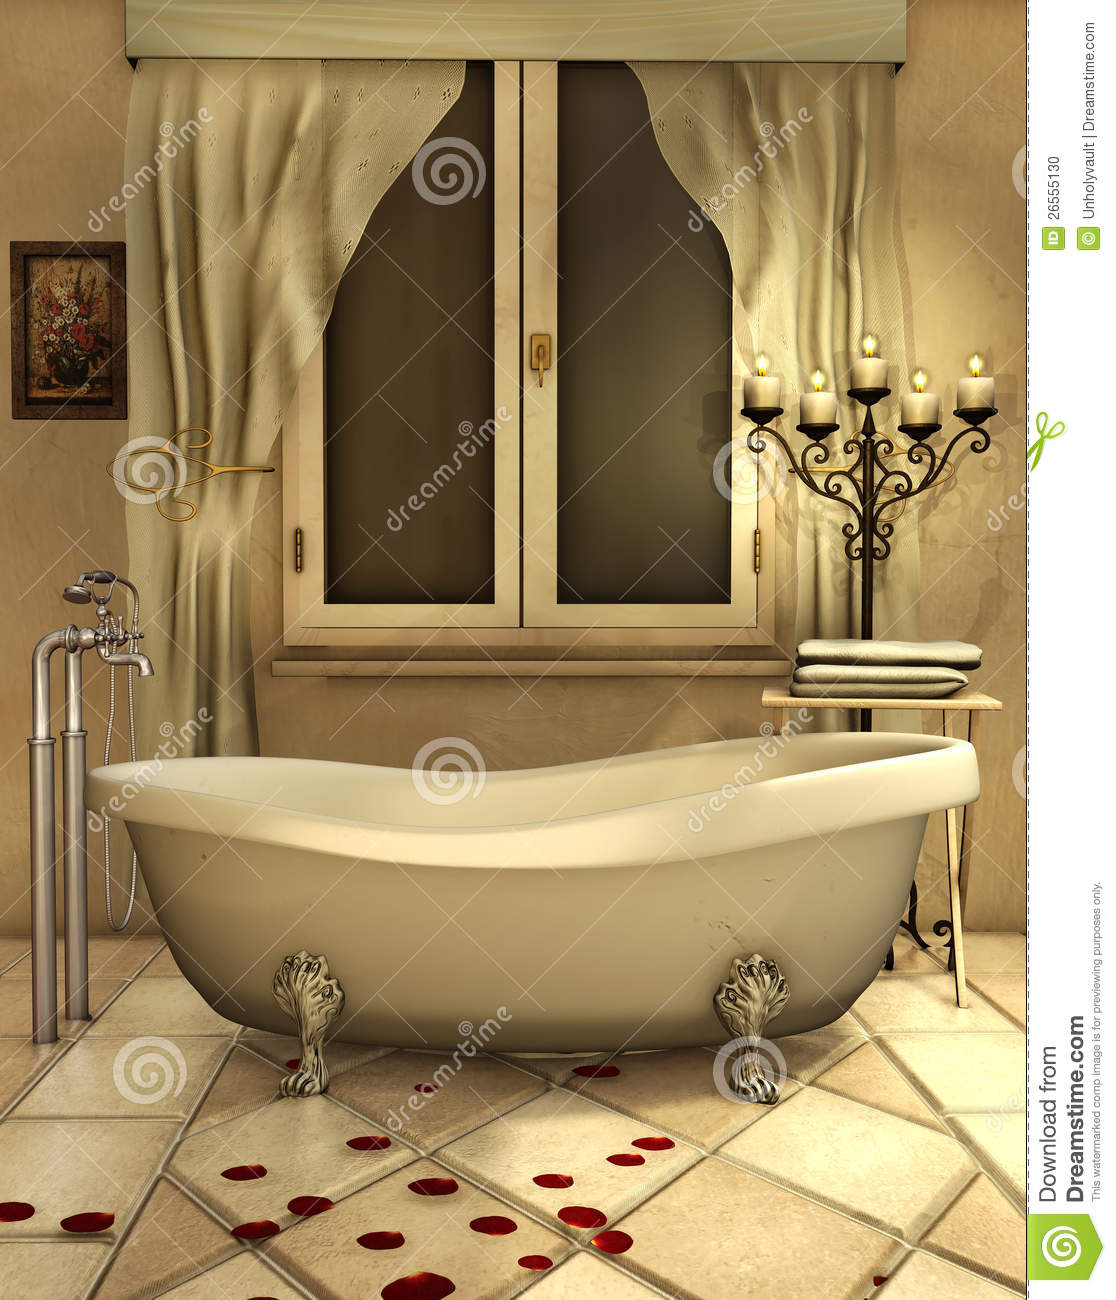 Bathroom With Candles Stock Photo Image 26555130